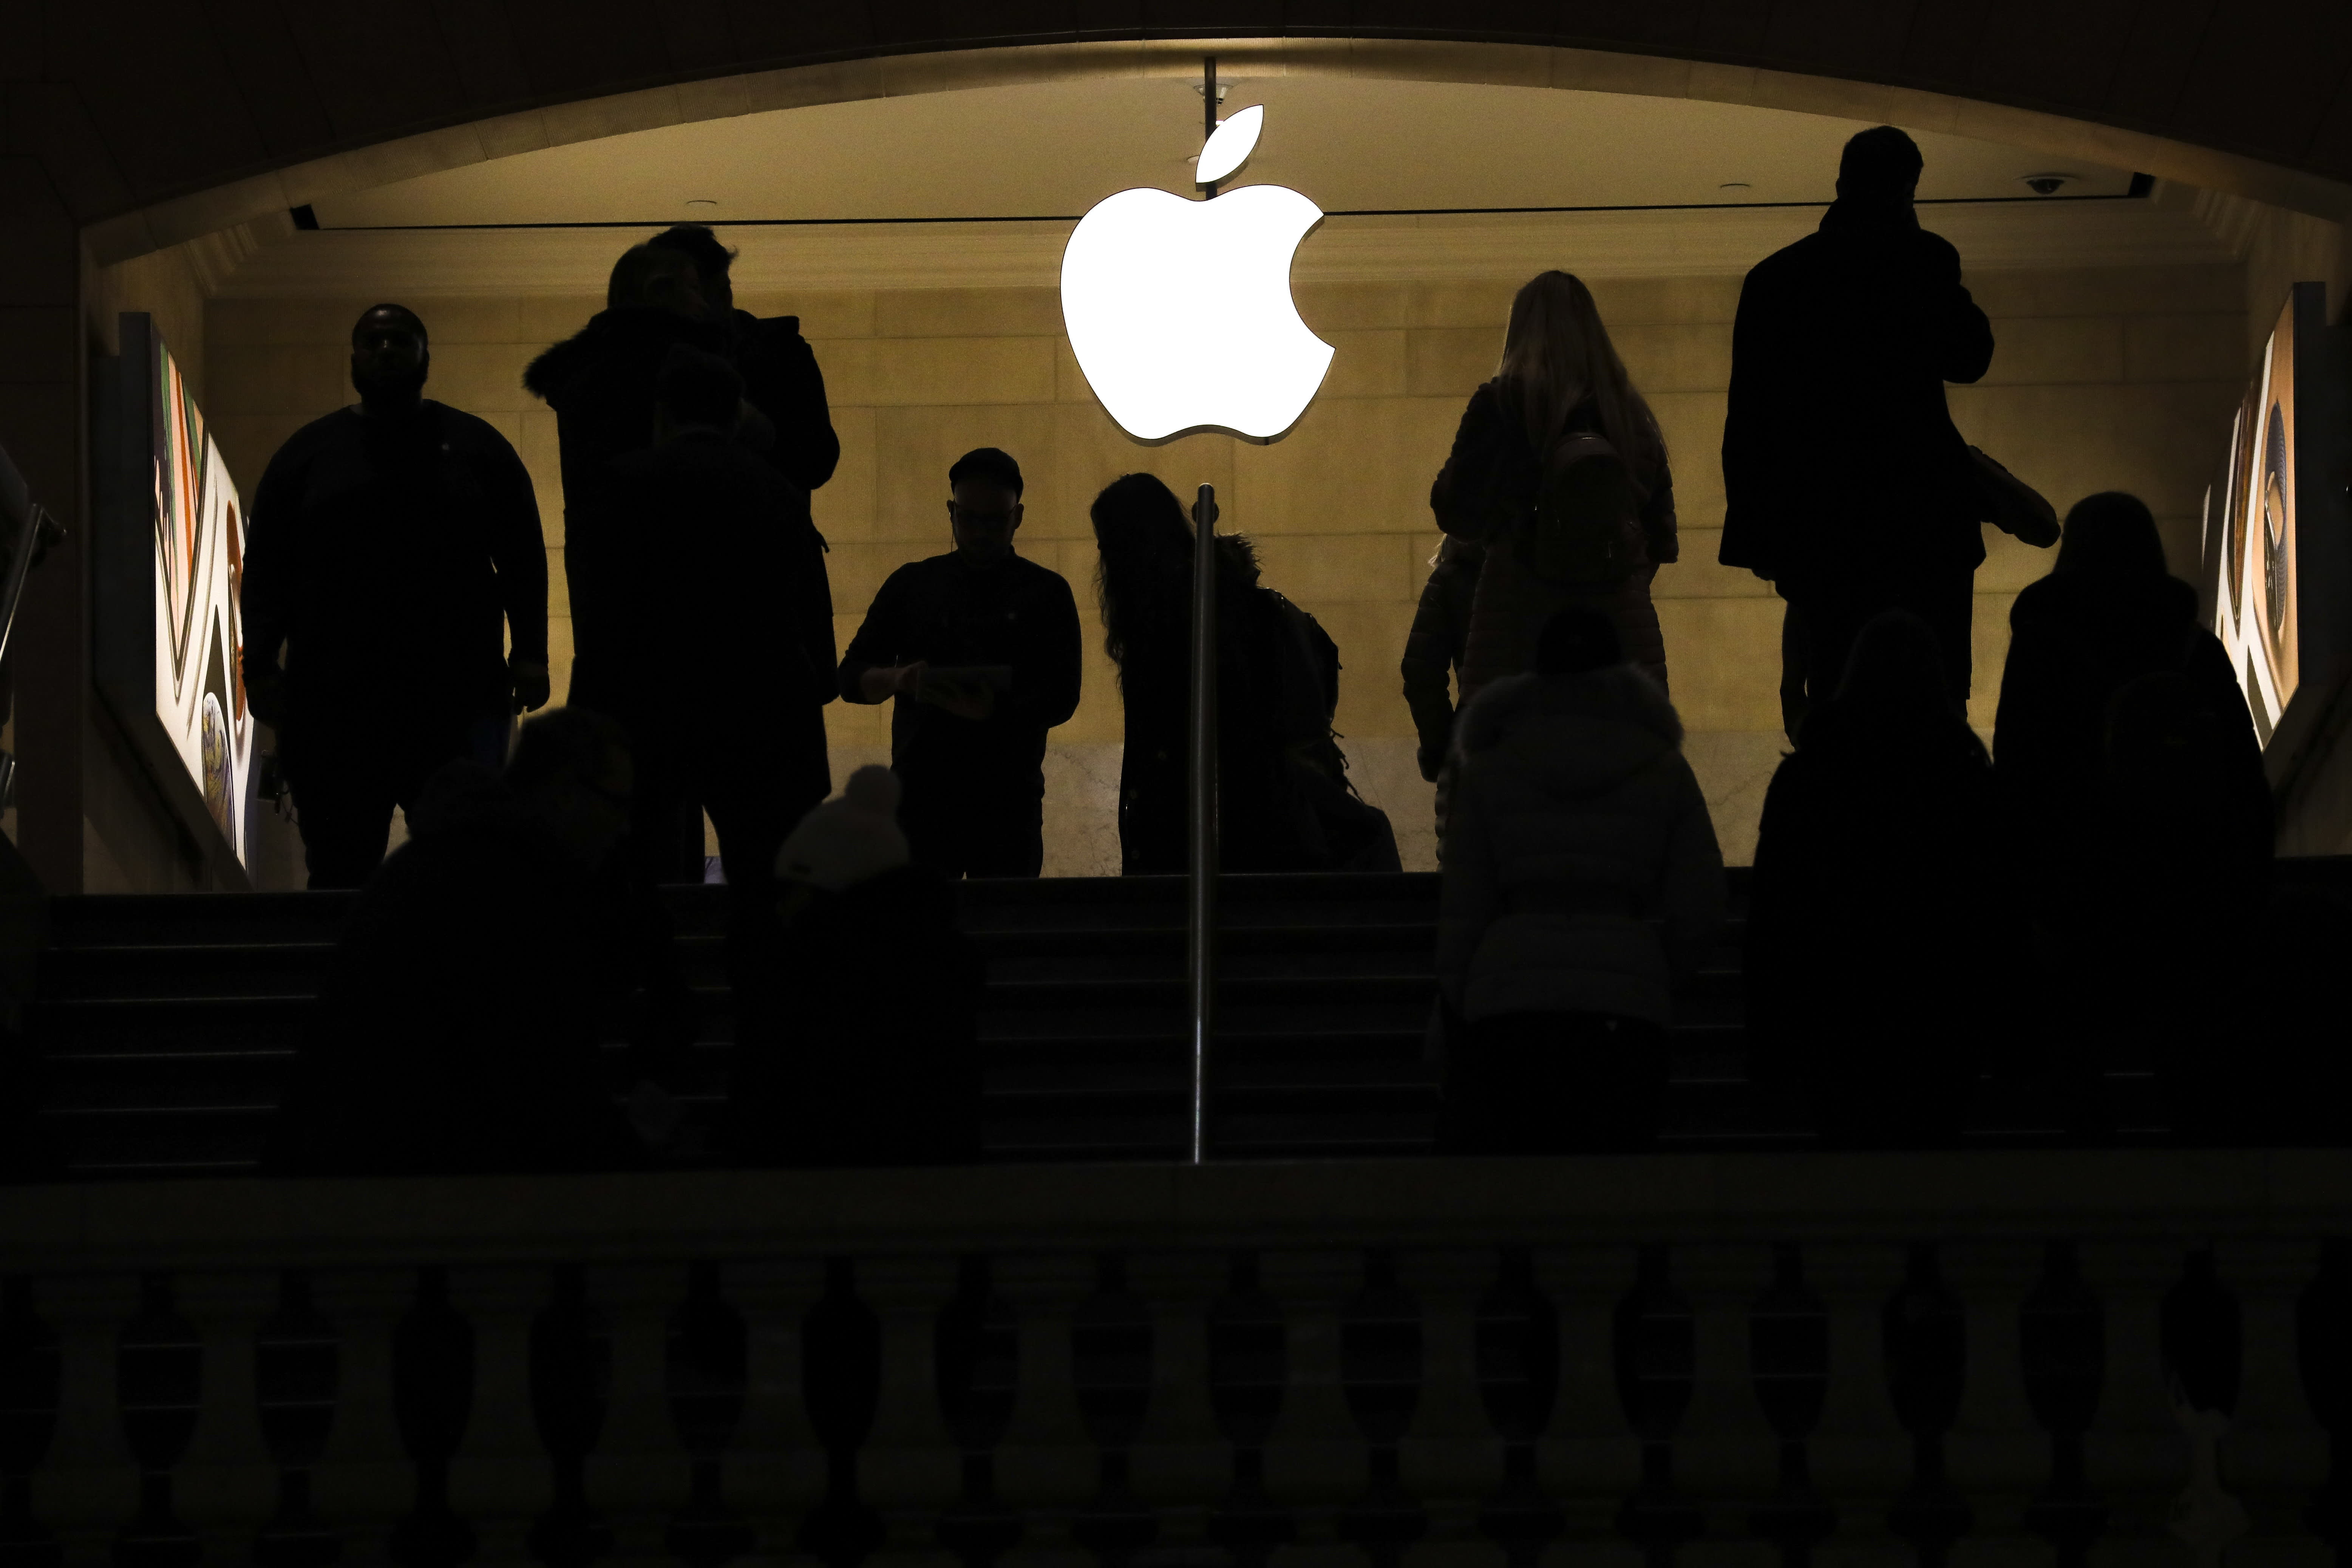 Apple is the 'poster child' for trade tensions and if its stock bounces, so could market - CNBC